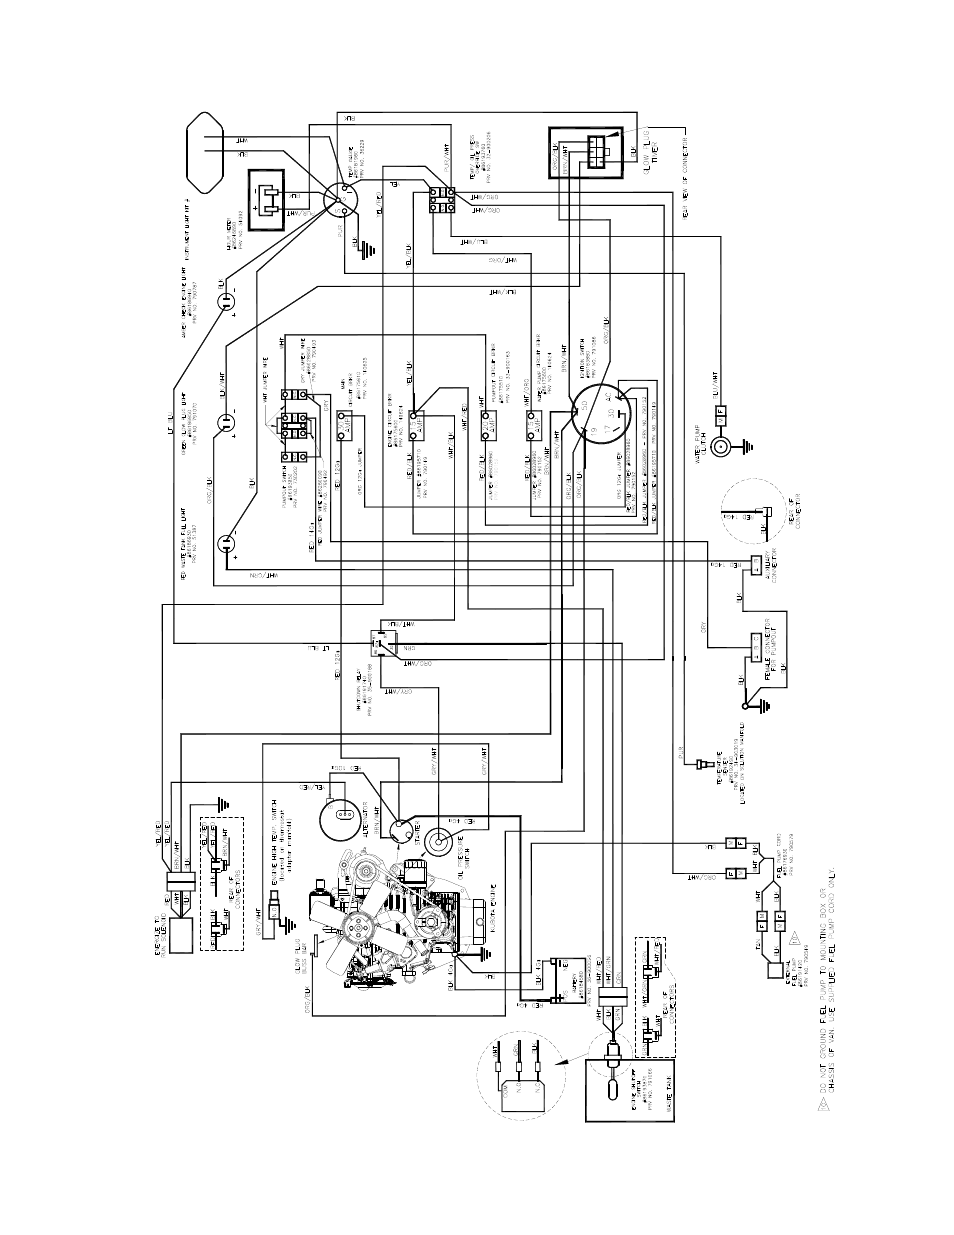 86037630 pgs 8-84and 8-85  wiring diagram   166